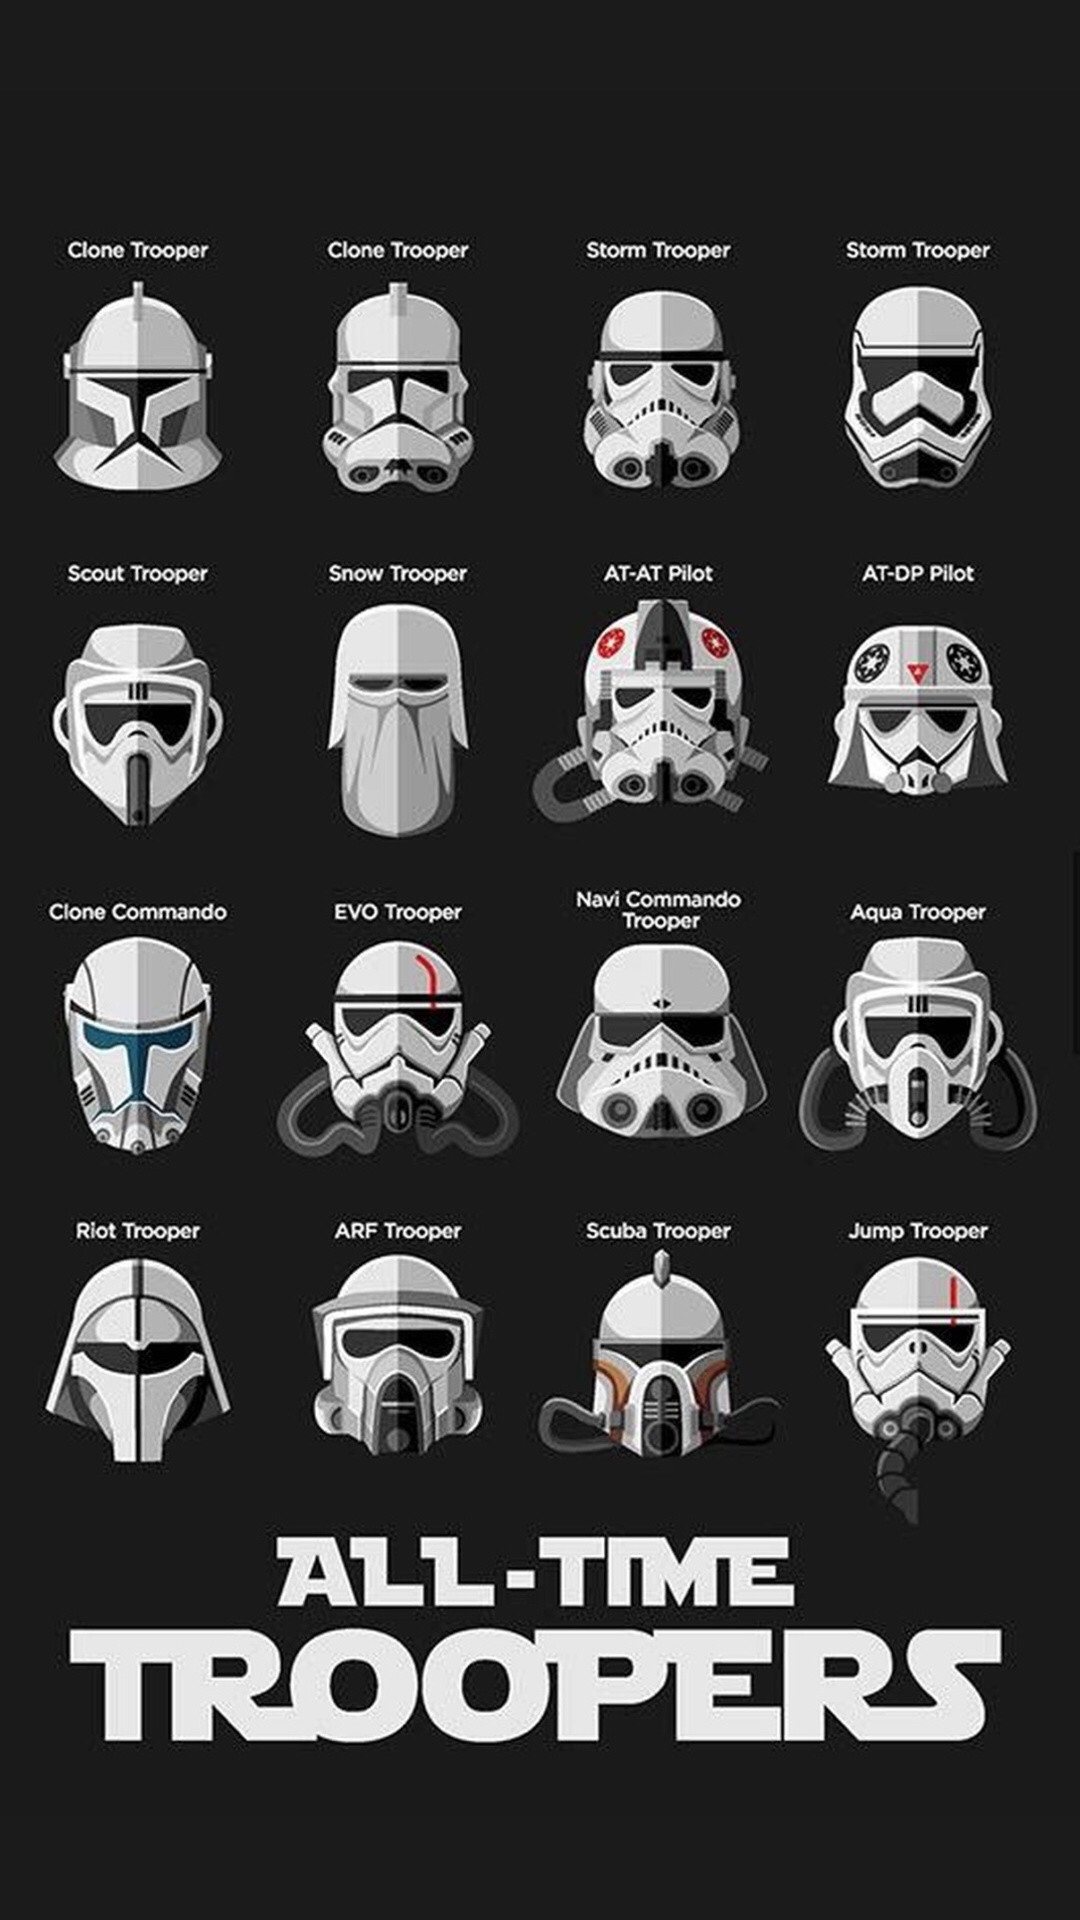 All-time storm troopers